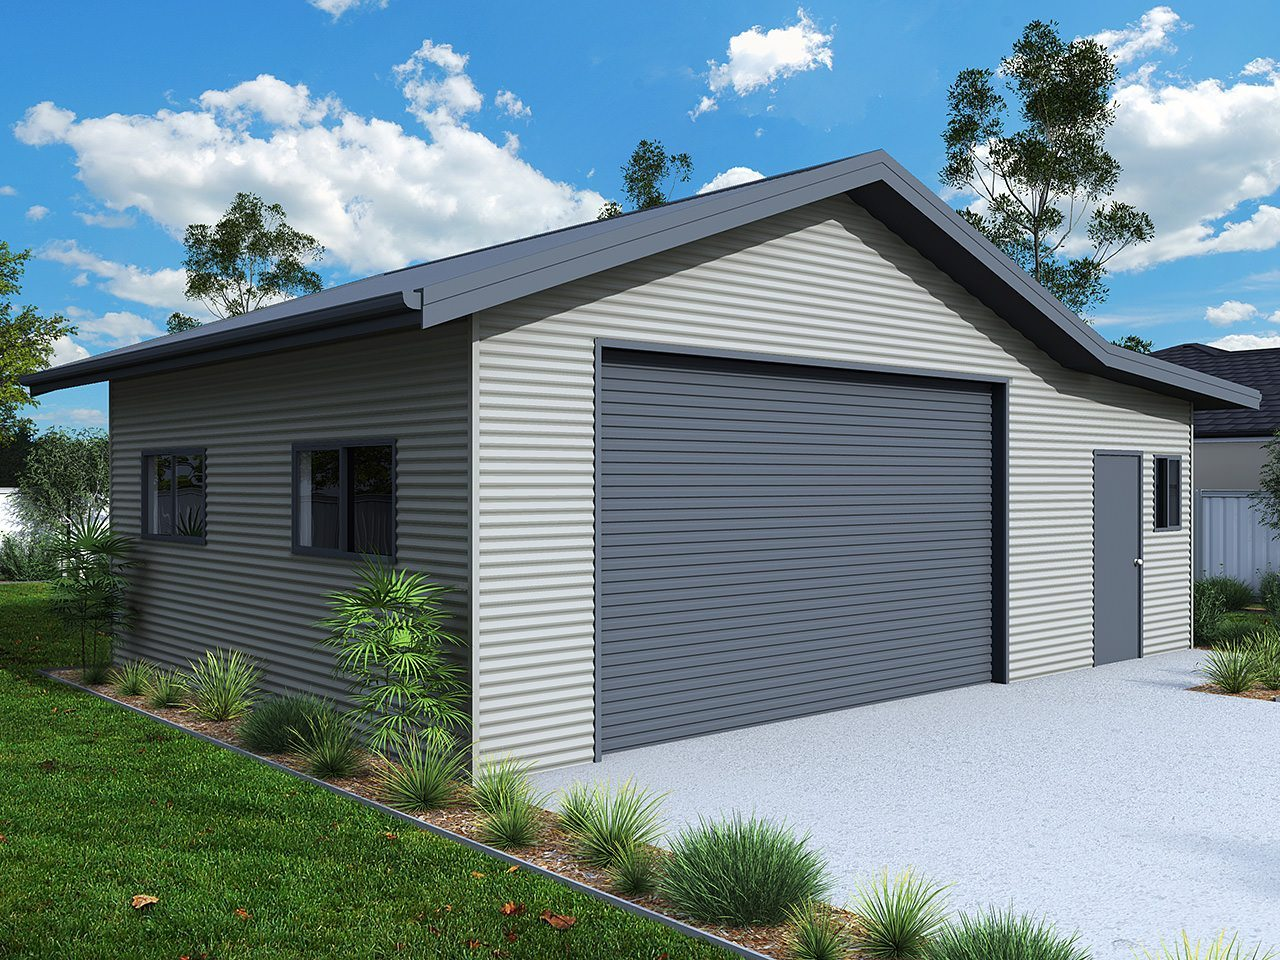 Sydney sheds and garages for sale ranbuild sydney for Barns garages